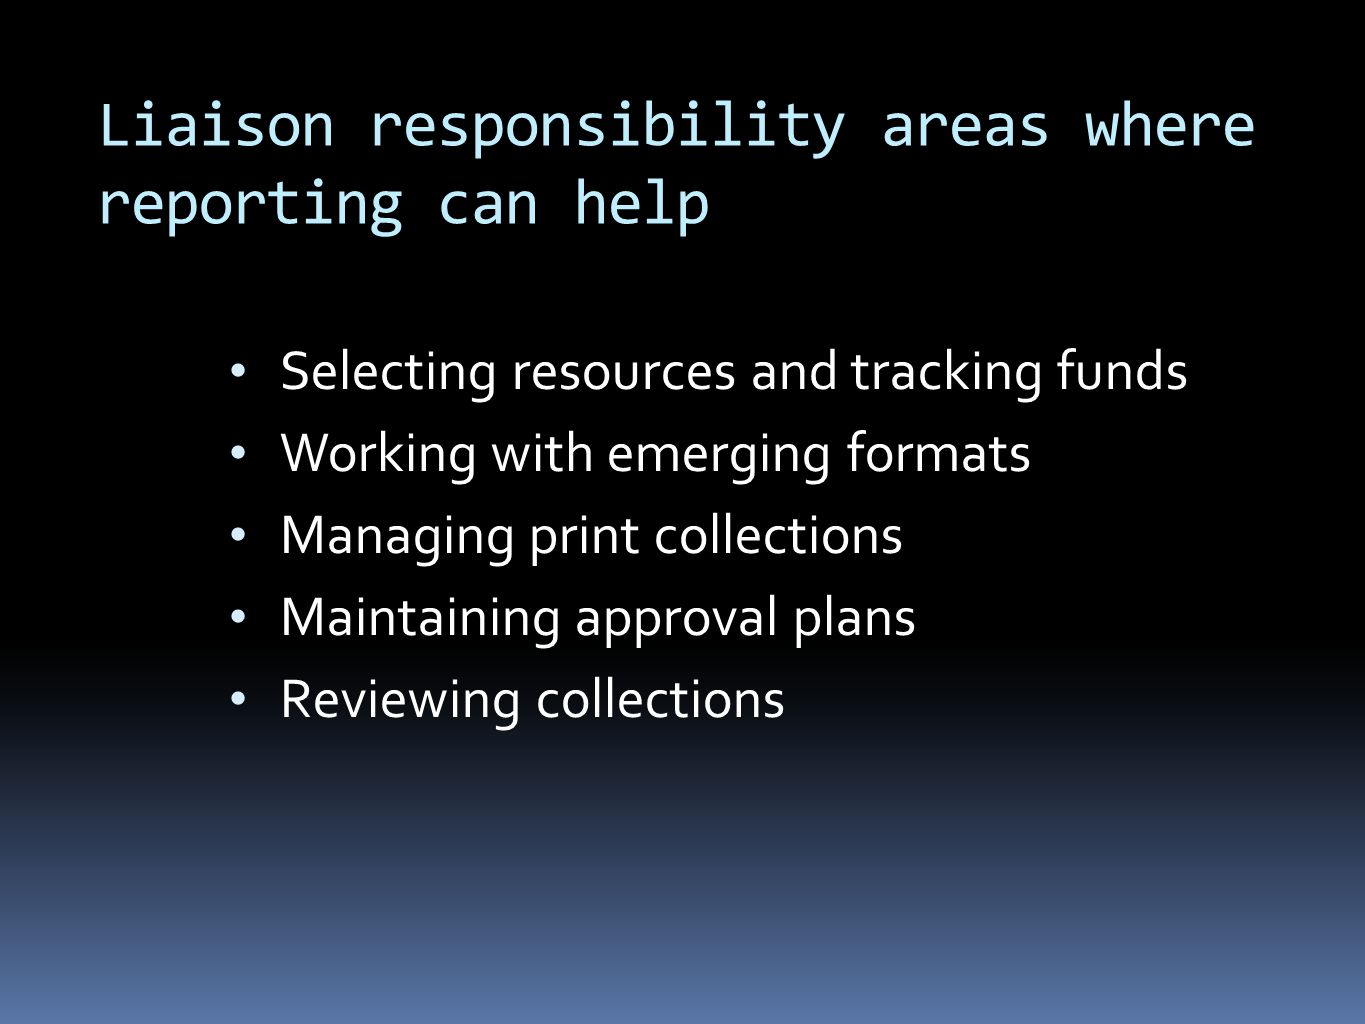 Liaison responsibility areas where reporting can help Selecting resources and tracking funds Working with emerging formats Managing print collections Maintaining approval plans Reviewing collections